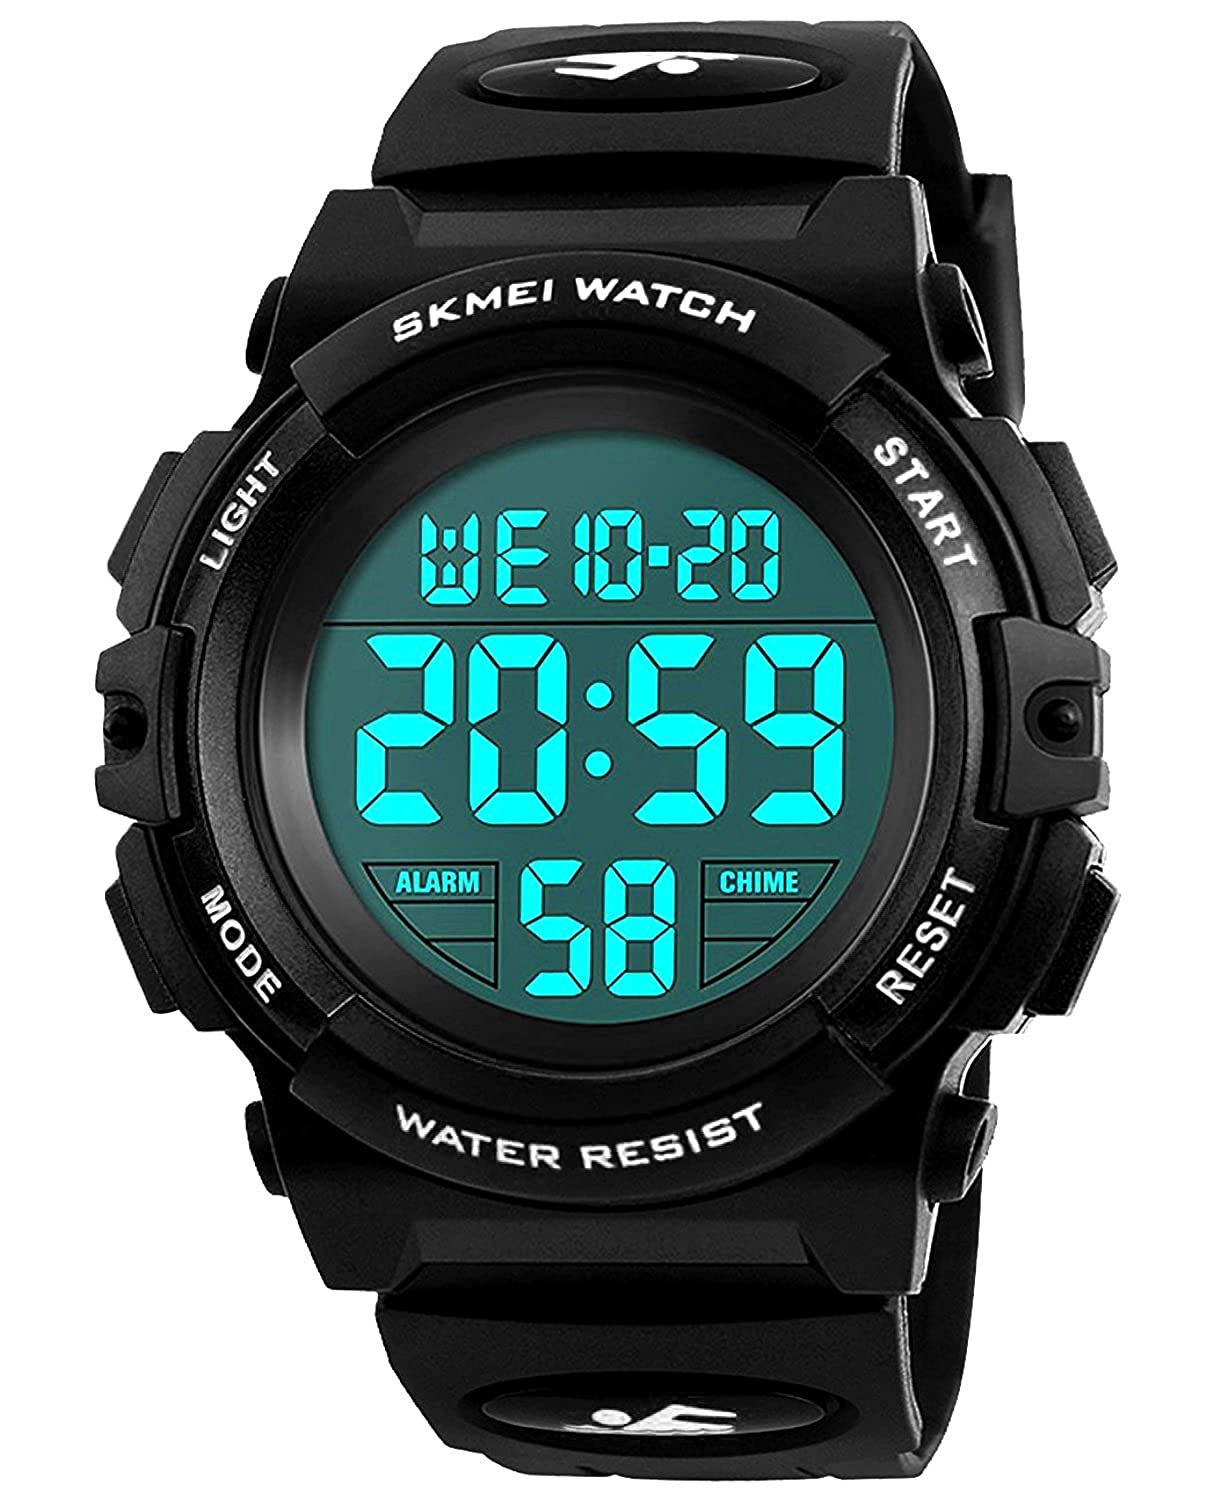 Kids Digital Watches for Boys - Waterproof Sports Watch with Alarm/Timer,  Black Childrens Outdoor Electronic Sport Digital Watches for Teenages Boys